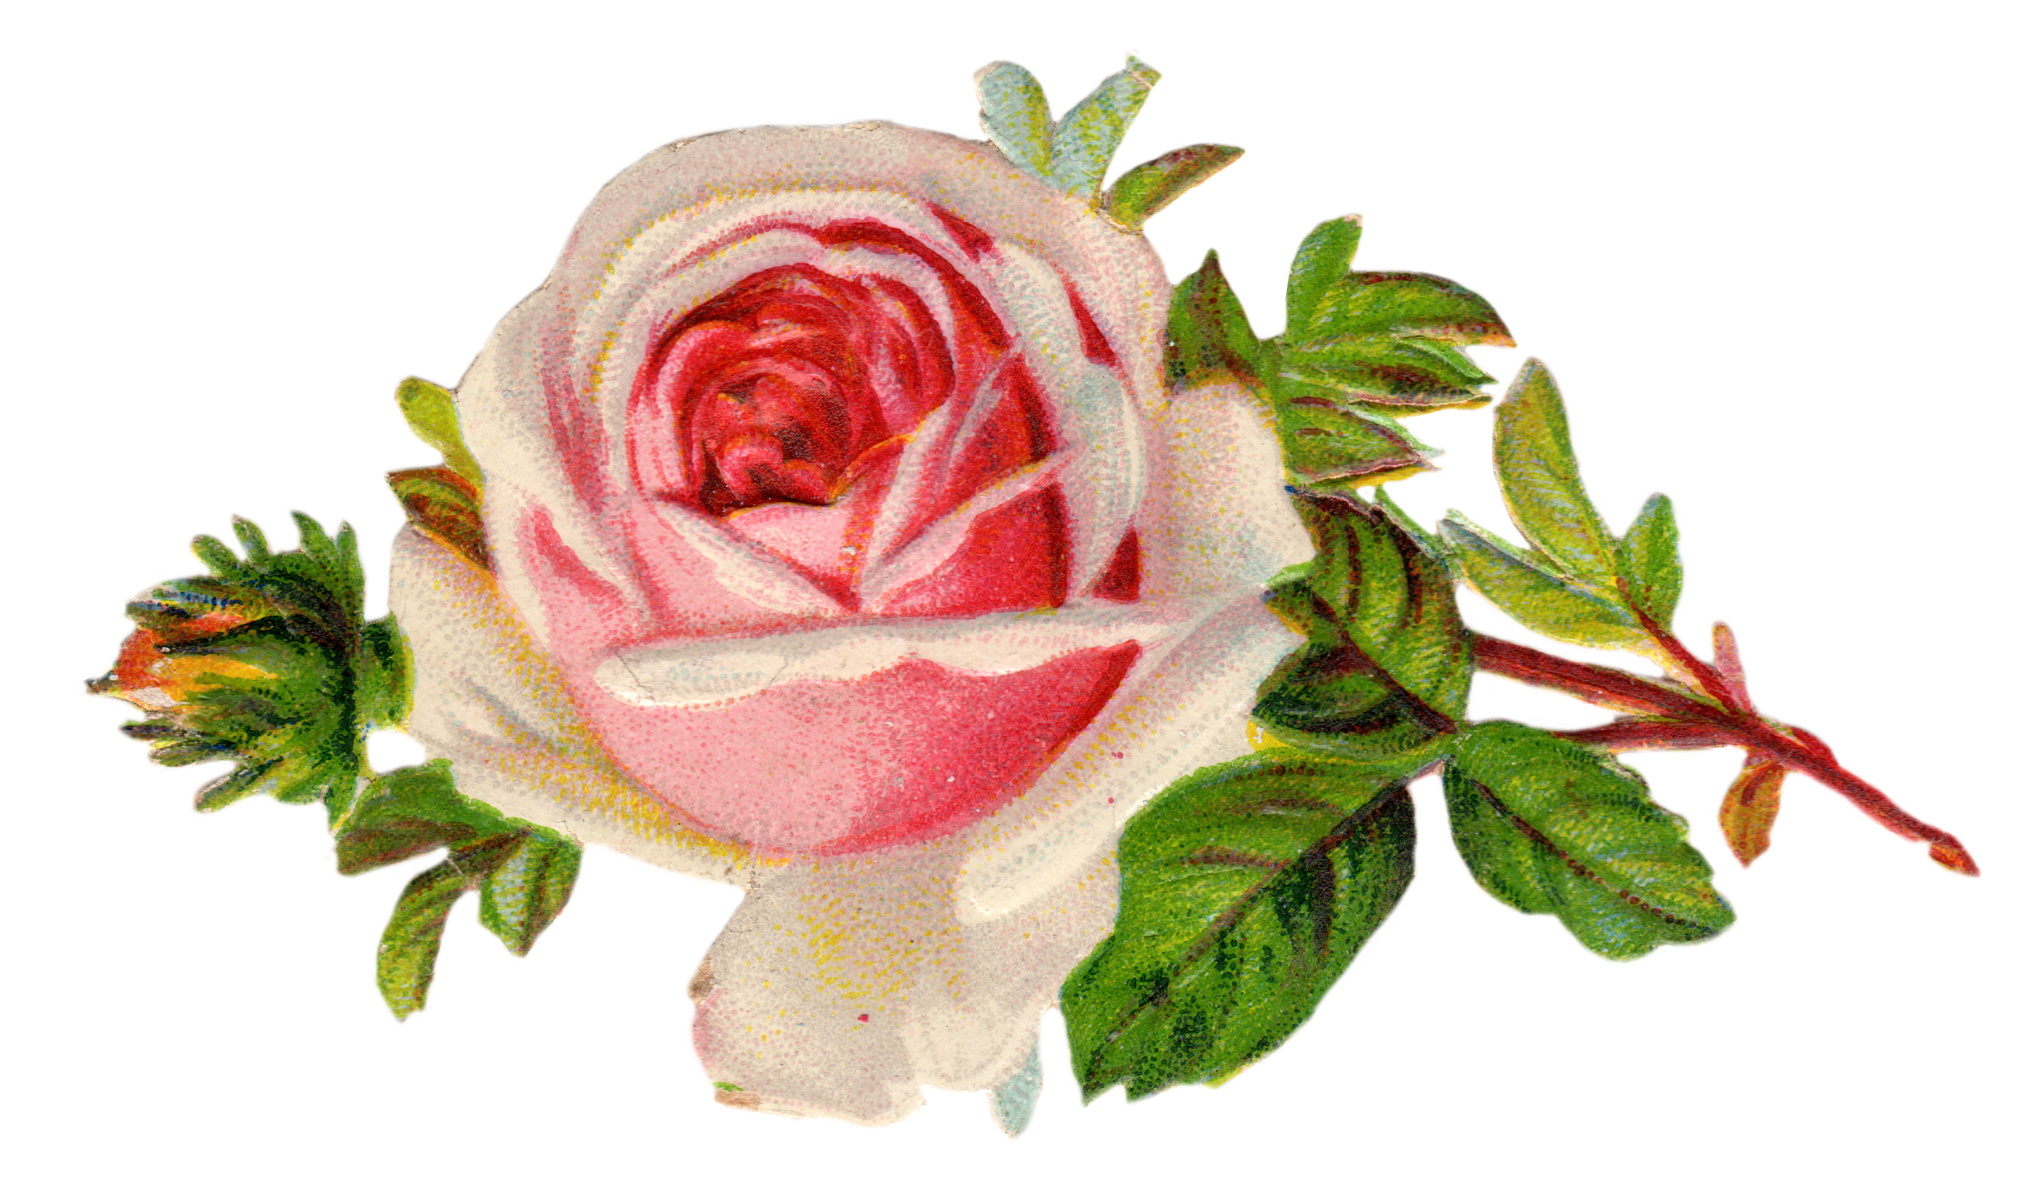 Crown of roses clipart. Free vintage rose clip